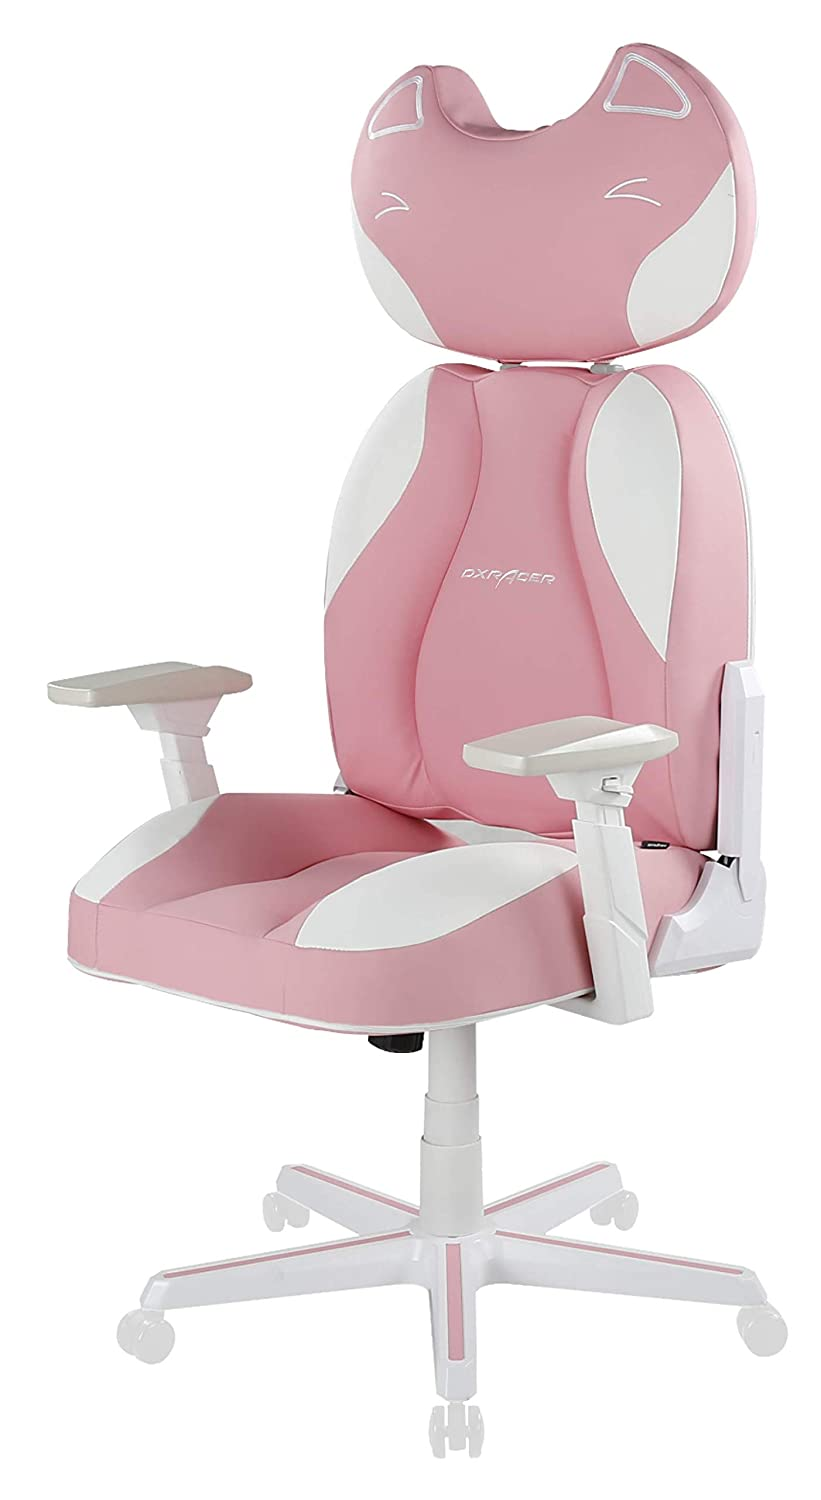 DXRacer DC JA001 PW Female Anchor Gaming Chair Pink